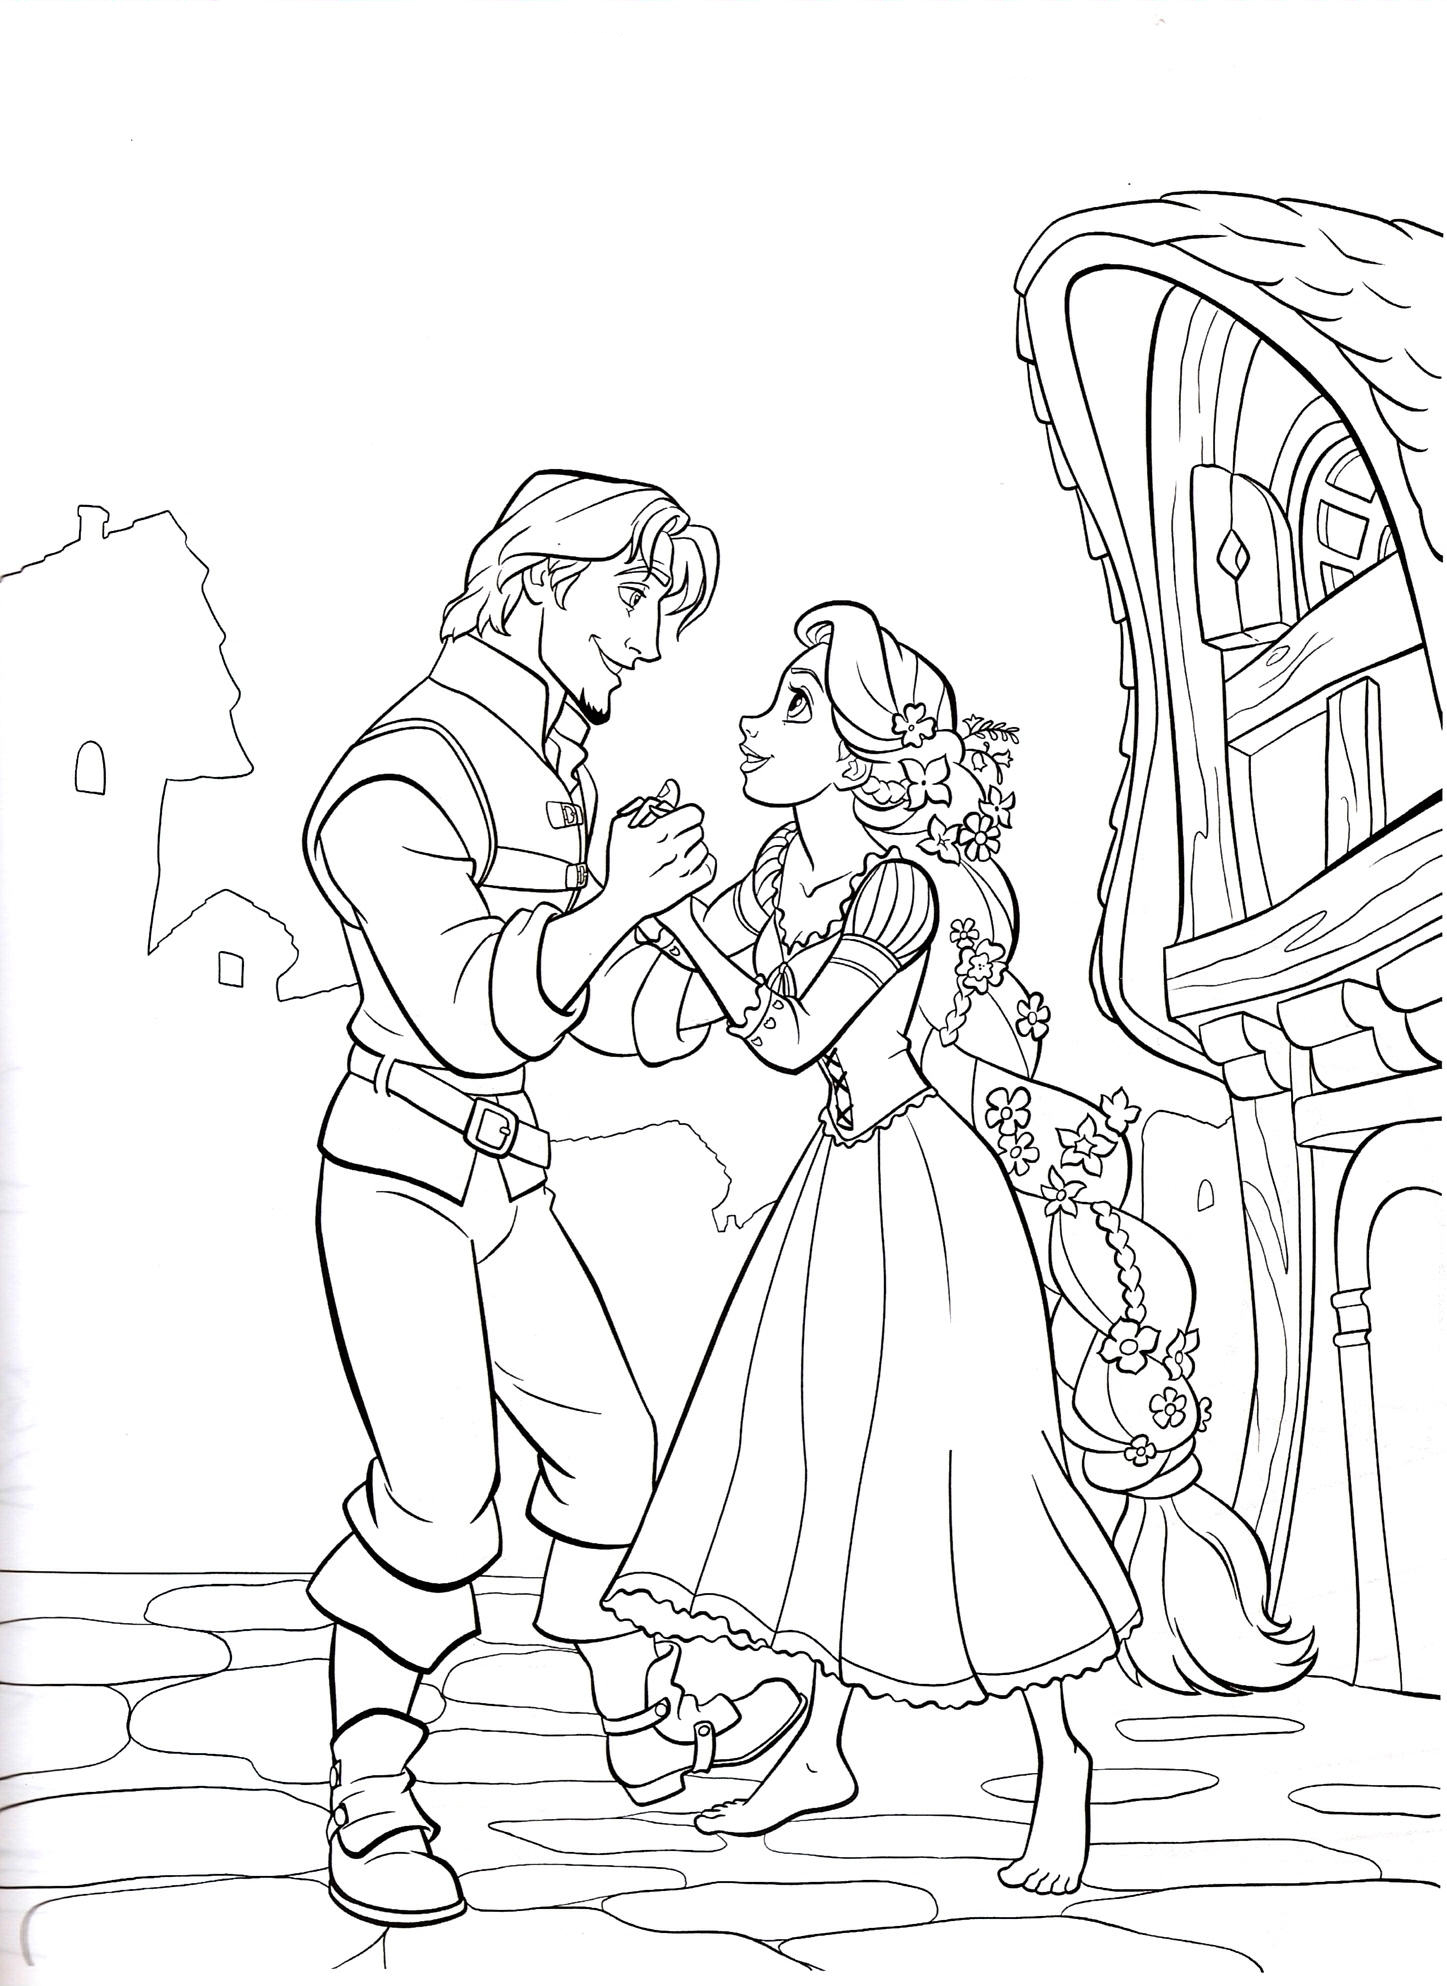 Rapunzel coloring pages best coloring pages for kids for Disney princess rapunzel coloring pages